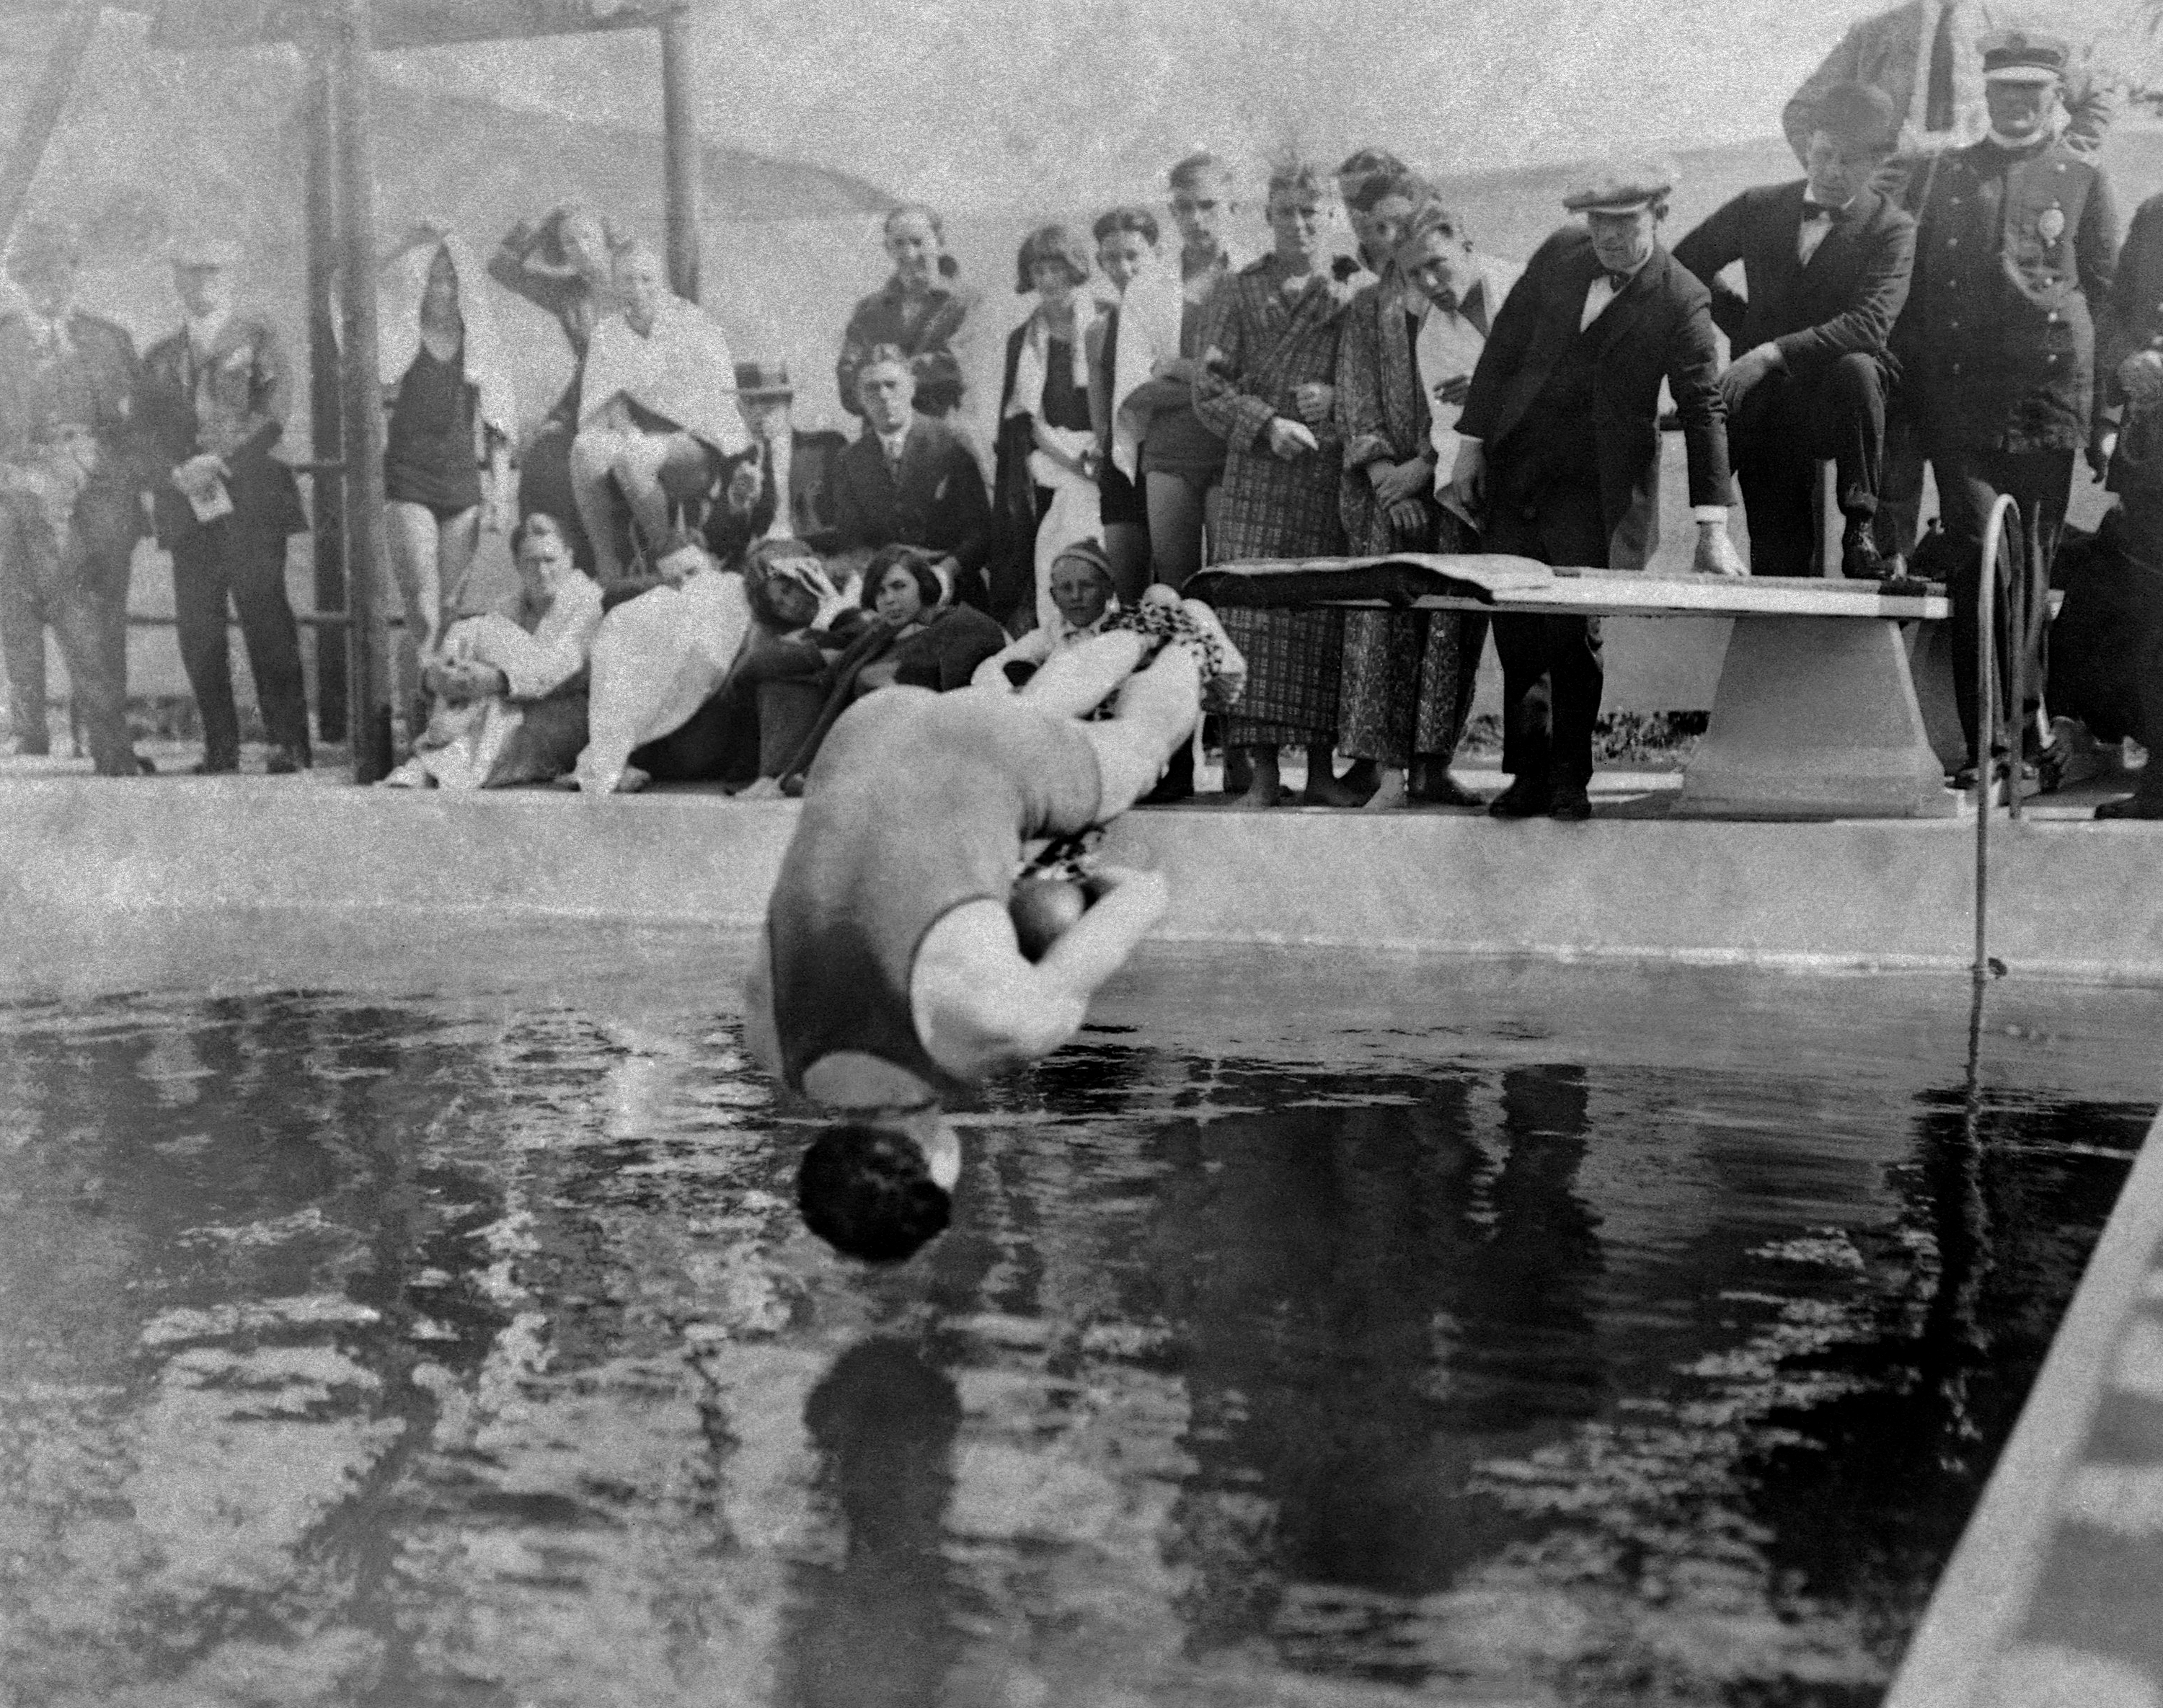 Houdini, handcuffed, and with his feet bound in chains, dives into pool in Los Angeles, May 7, 1923.